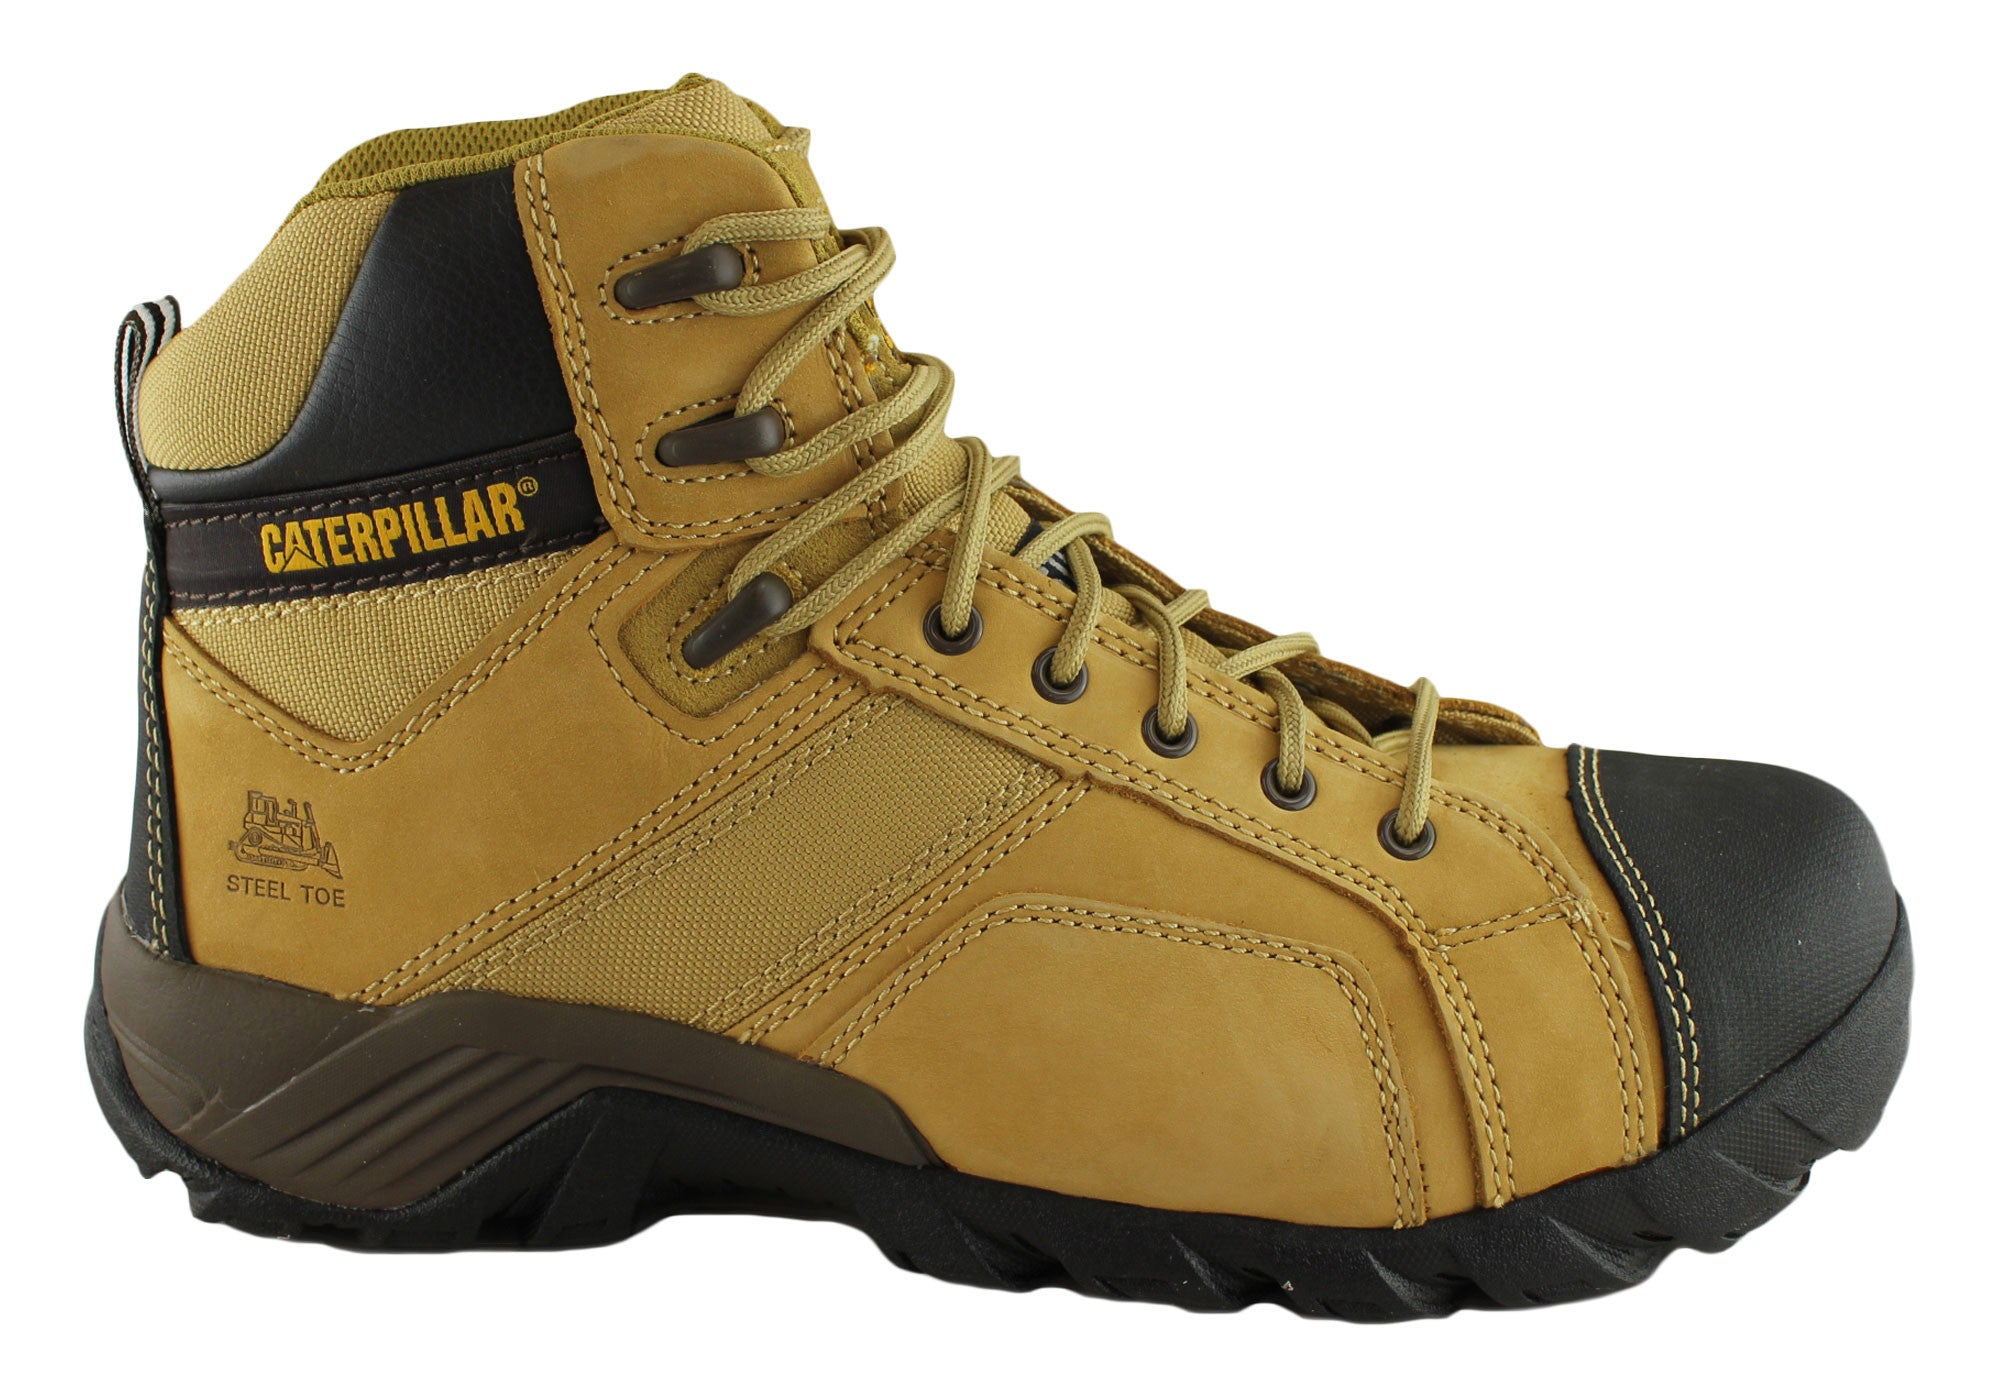 Caterpillar Safety Shoes For Sale